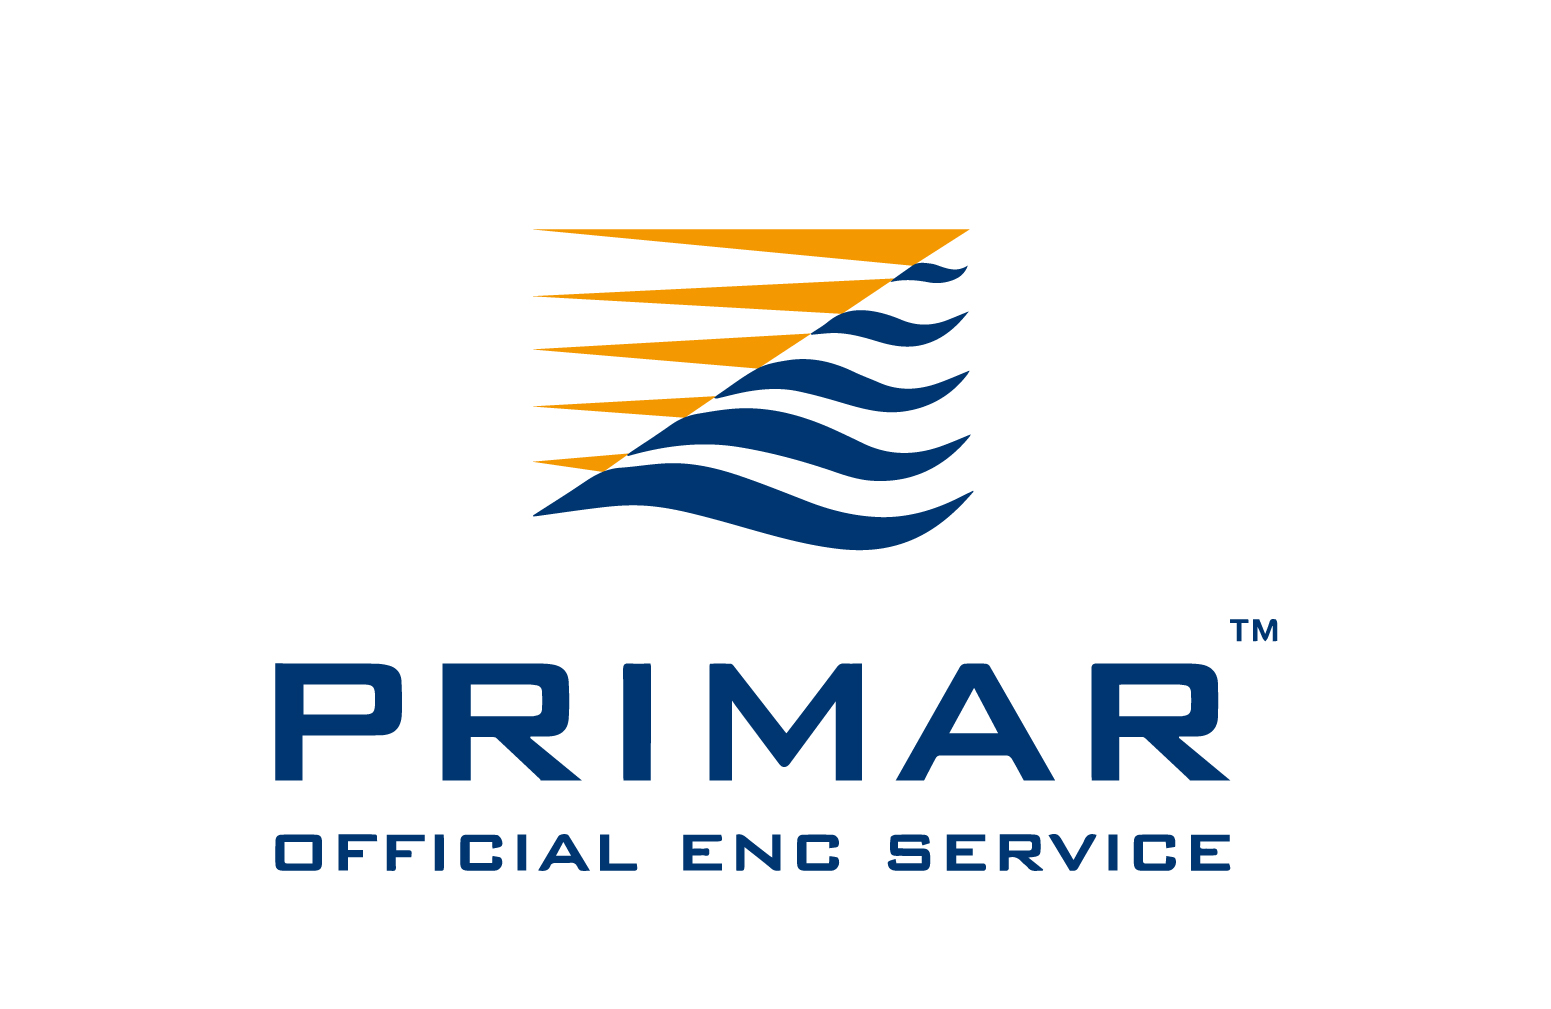 CAIM Services and Partners-Primar Official ENC Service 1b